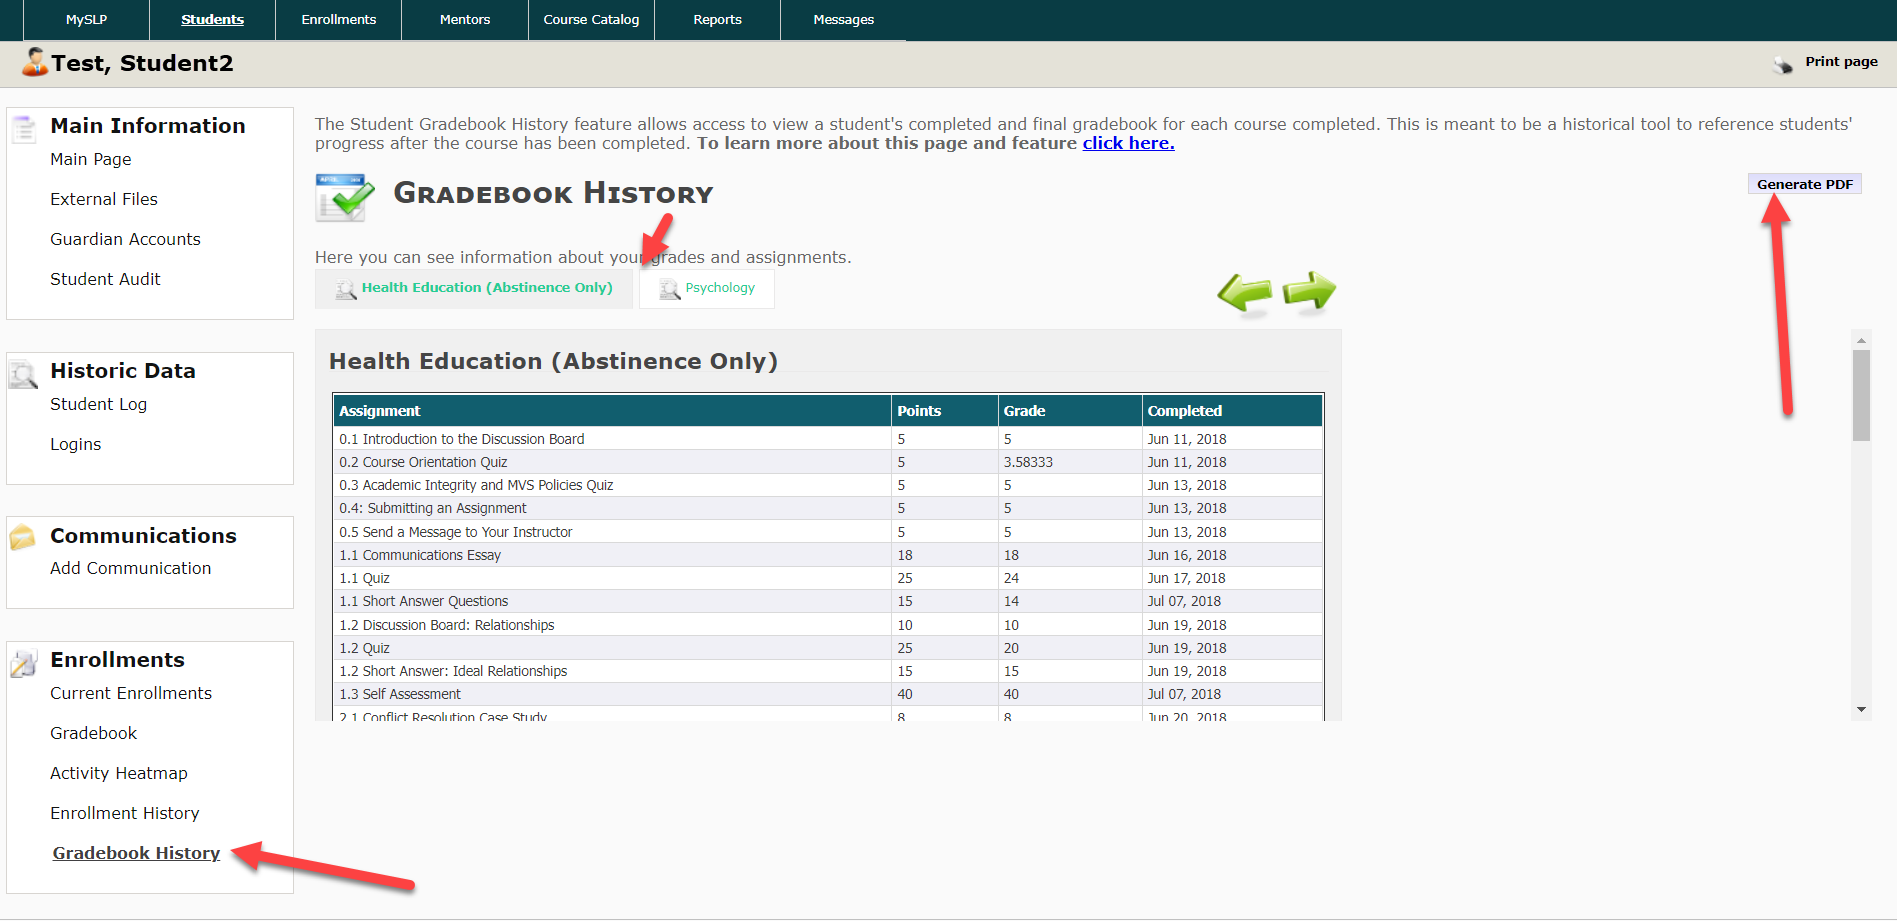 The Gradebook History page is shown with a table listing assignments, points associated, grade and completed date. Arrows point to the Gradebook History option under the Enrollments section in the left menu, to the course tabs and finally to the Generate PDF button located at the top right corner of the page.